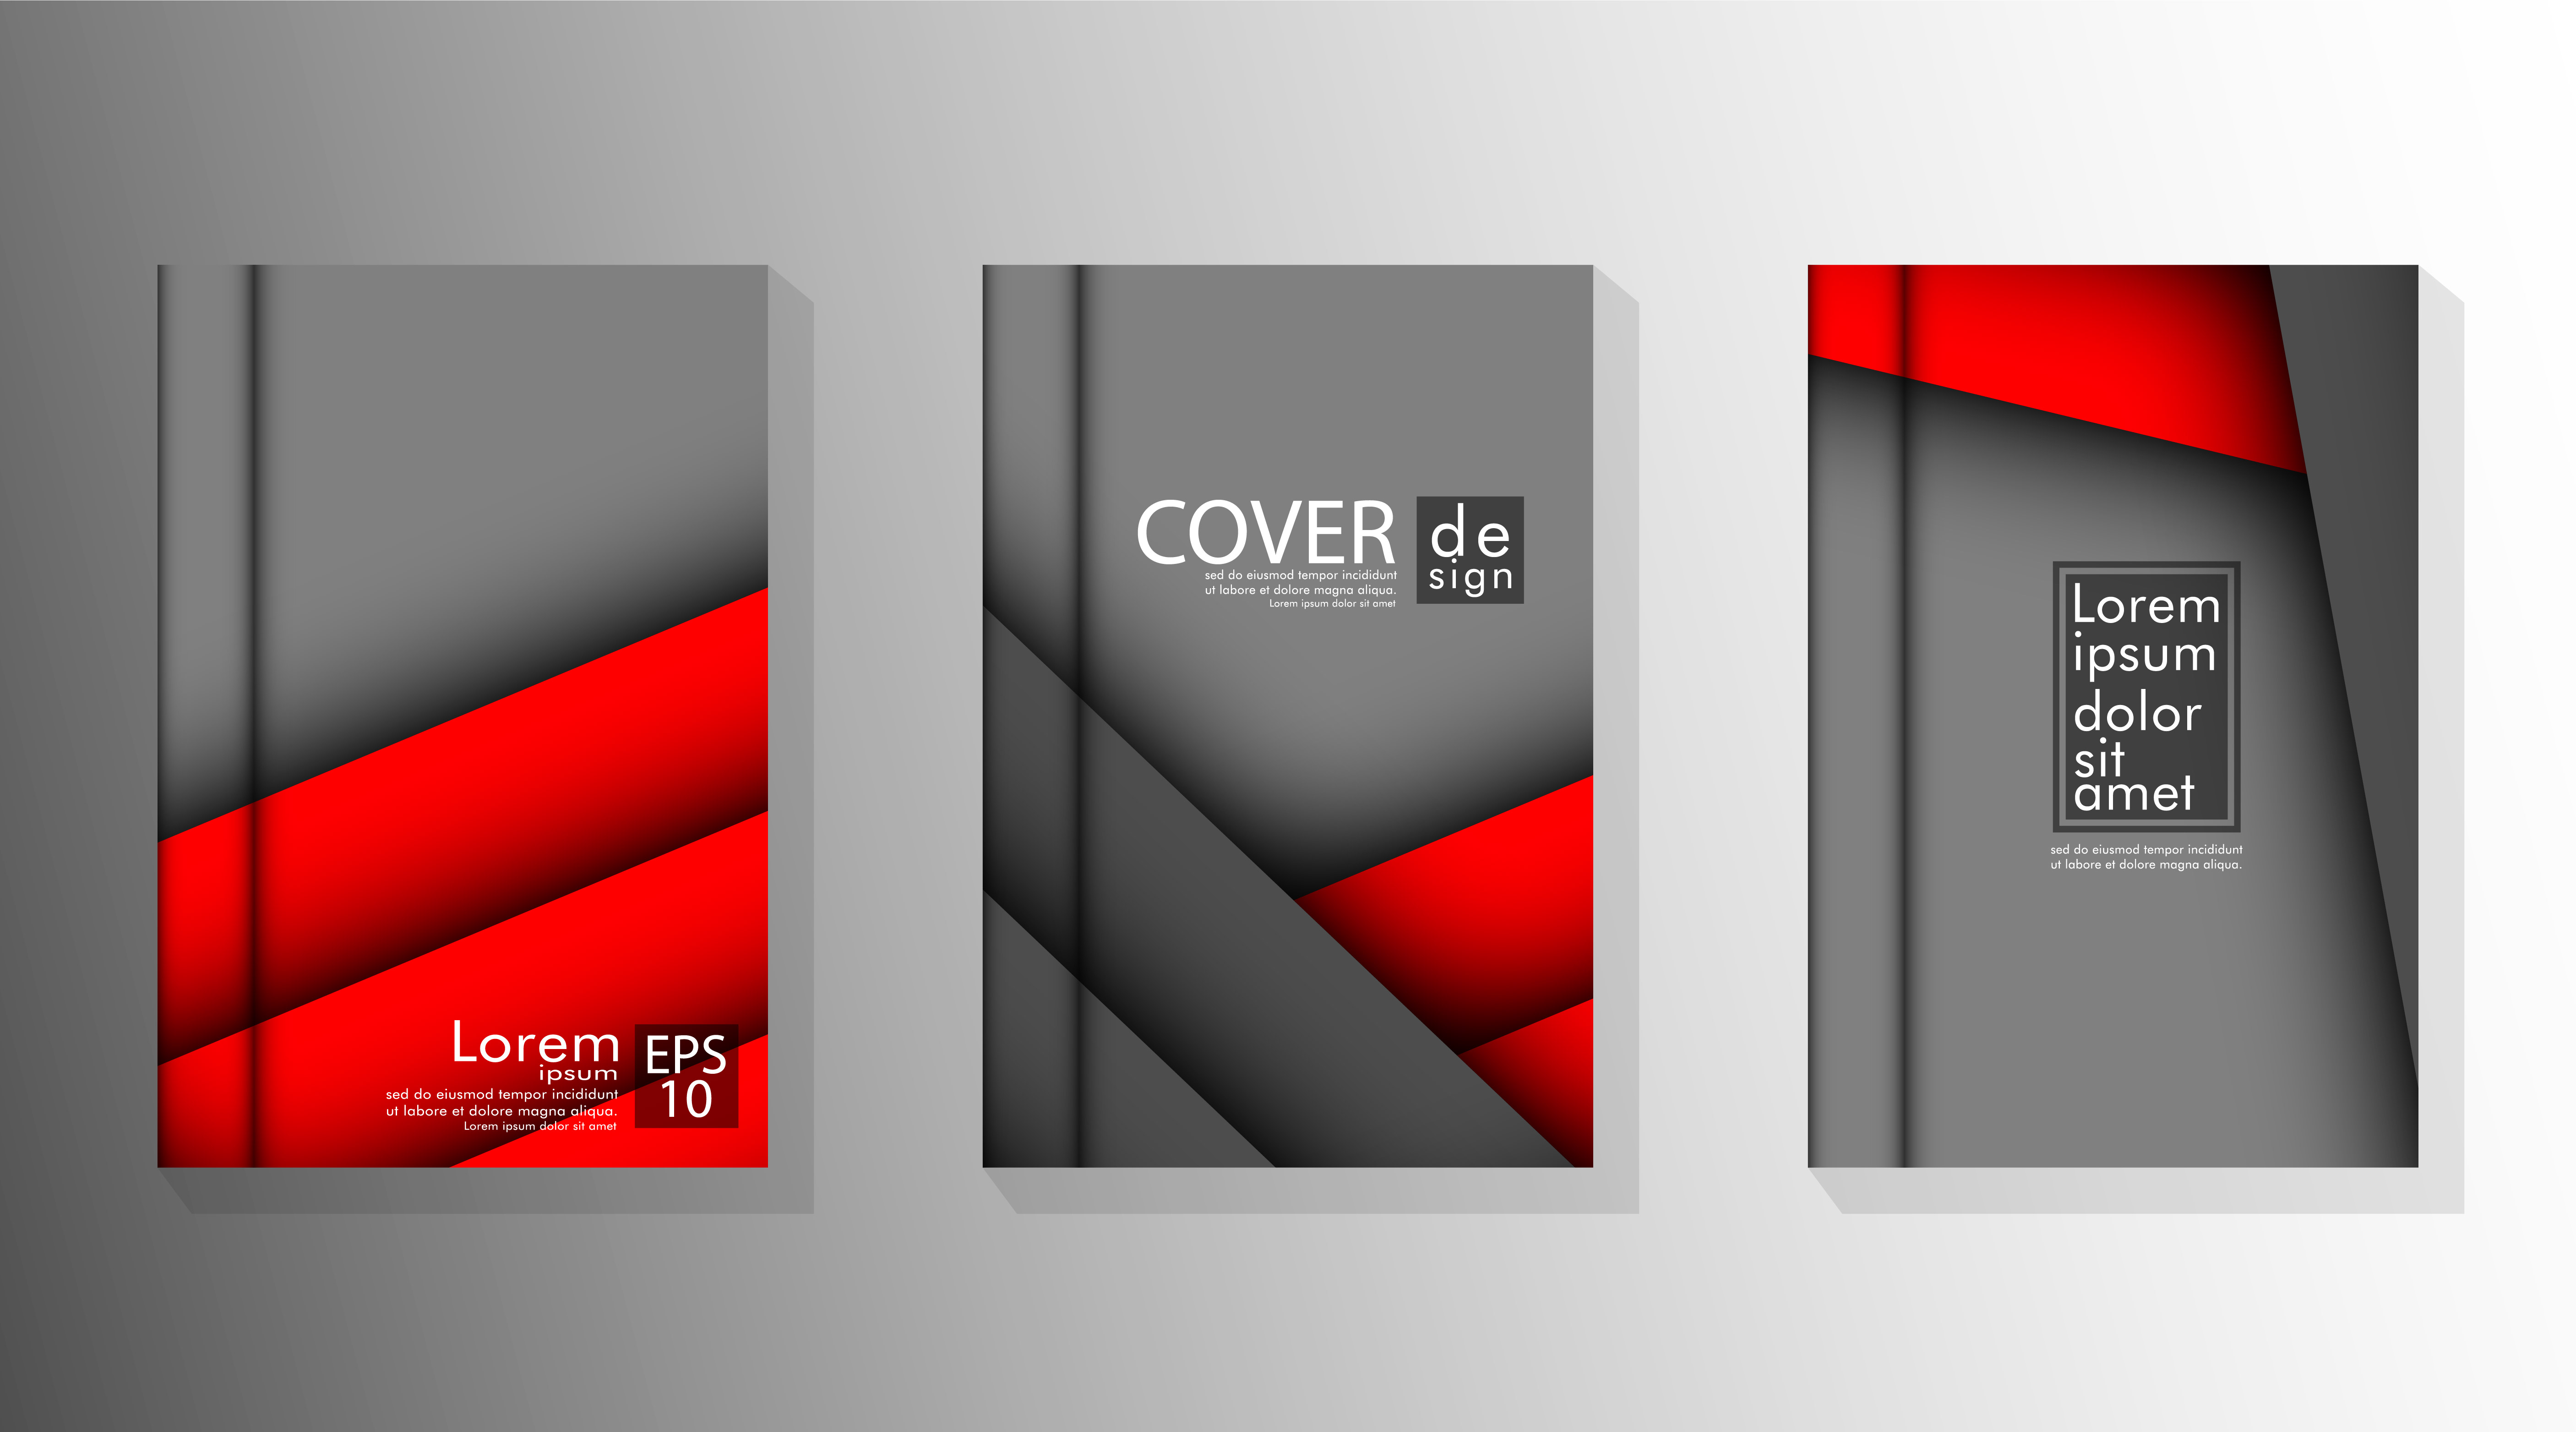 Covers with overlapping angled layers in gray and red